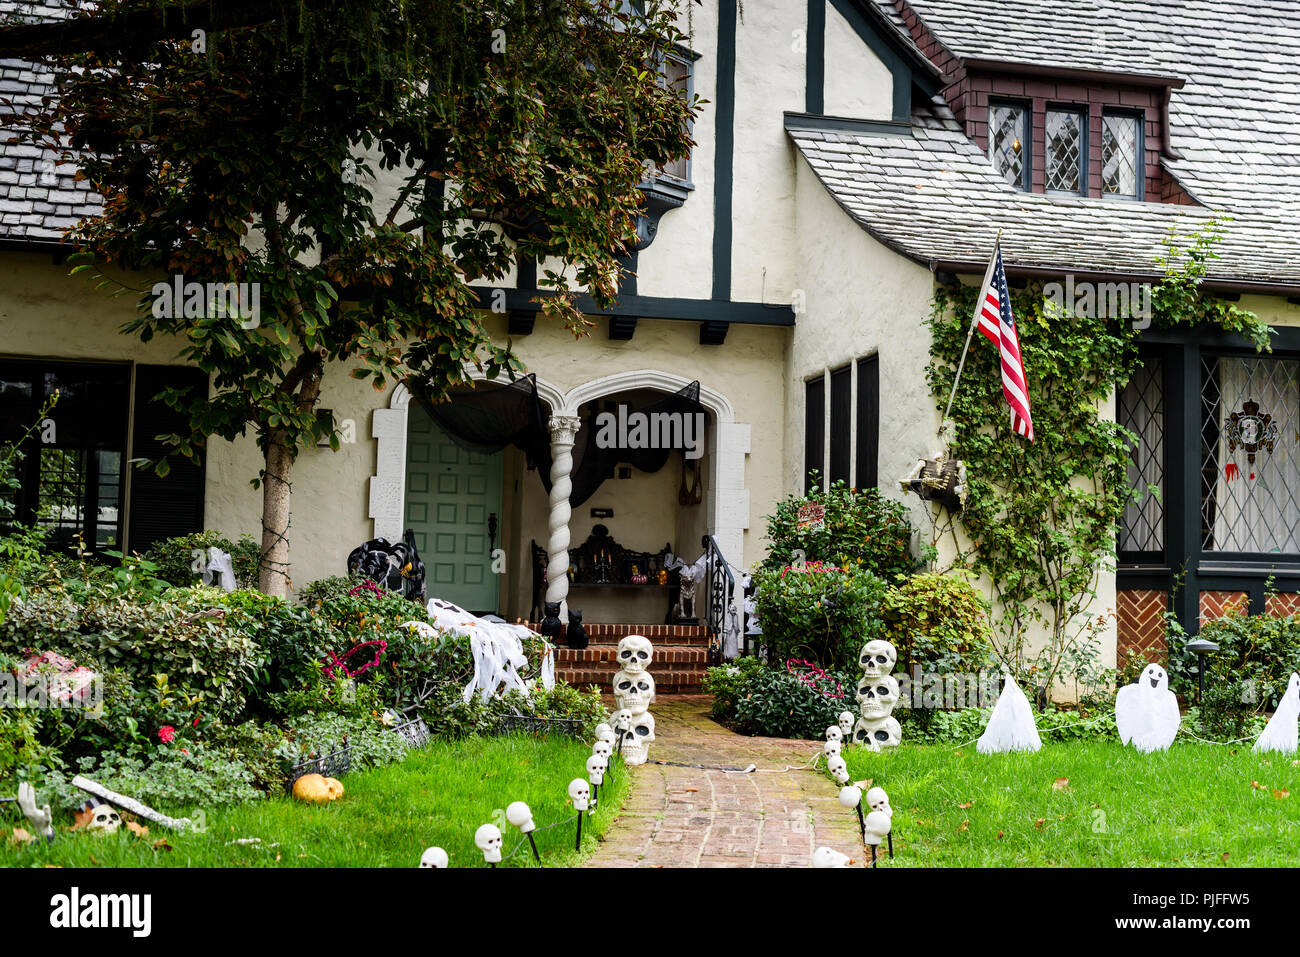 Halloween In Front Of House Decorations Stock Photo 217929969 Alamy